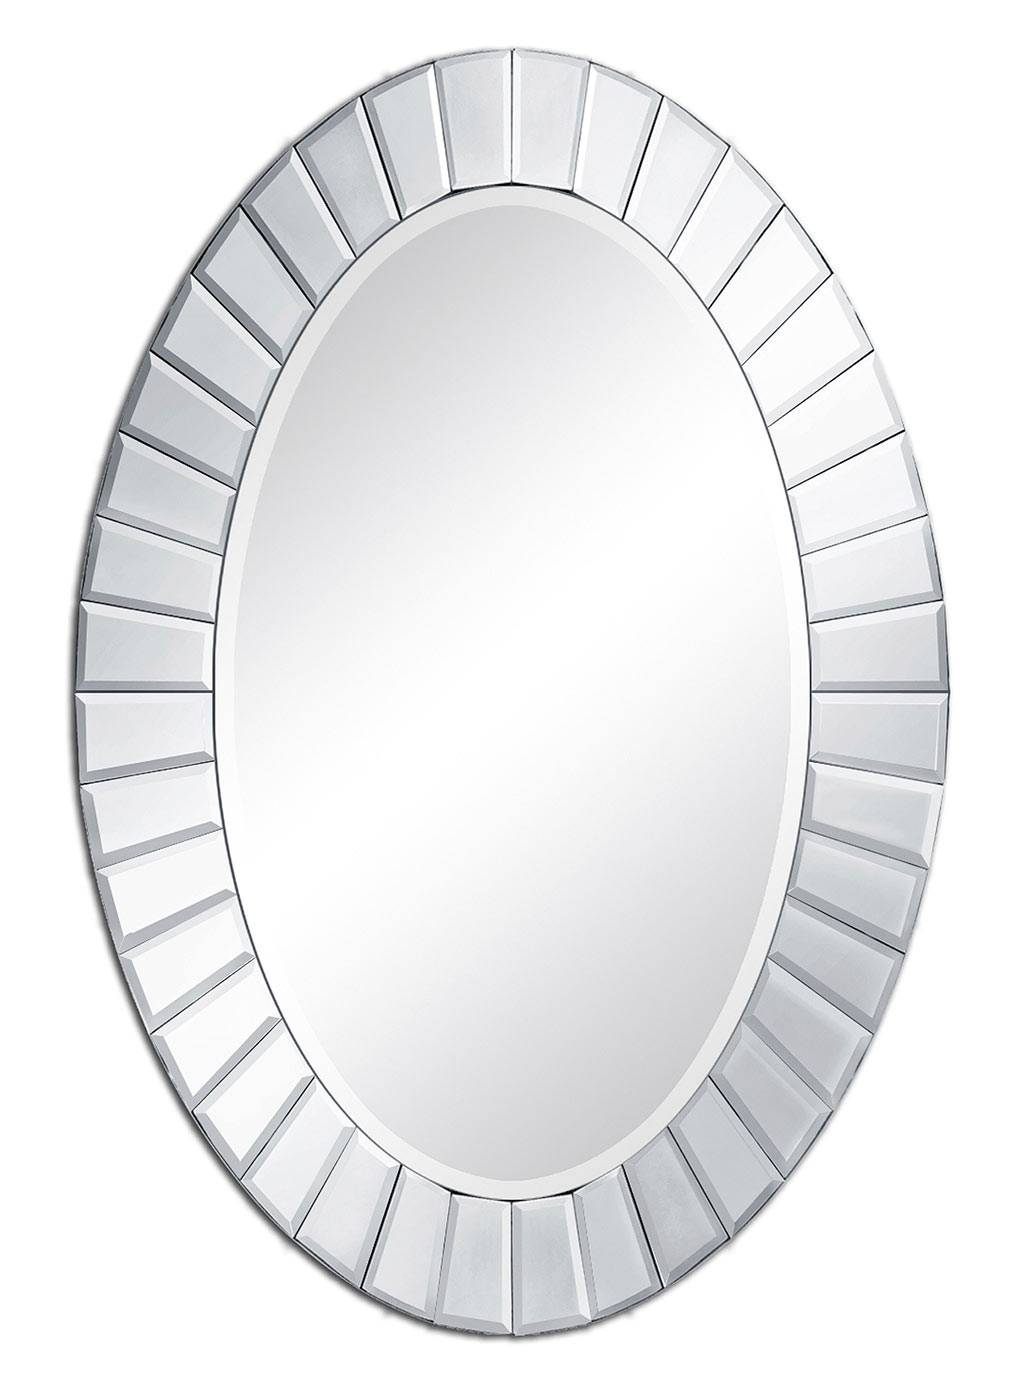 Oval Mirrors: Useful And Fantastic - In Decors inside Large Oval Mirrors (Image 20 of 25)